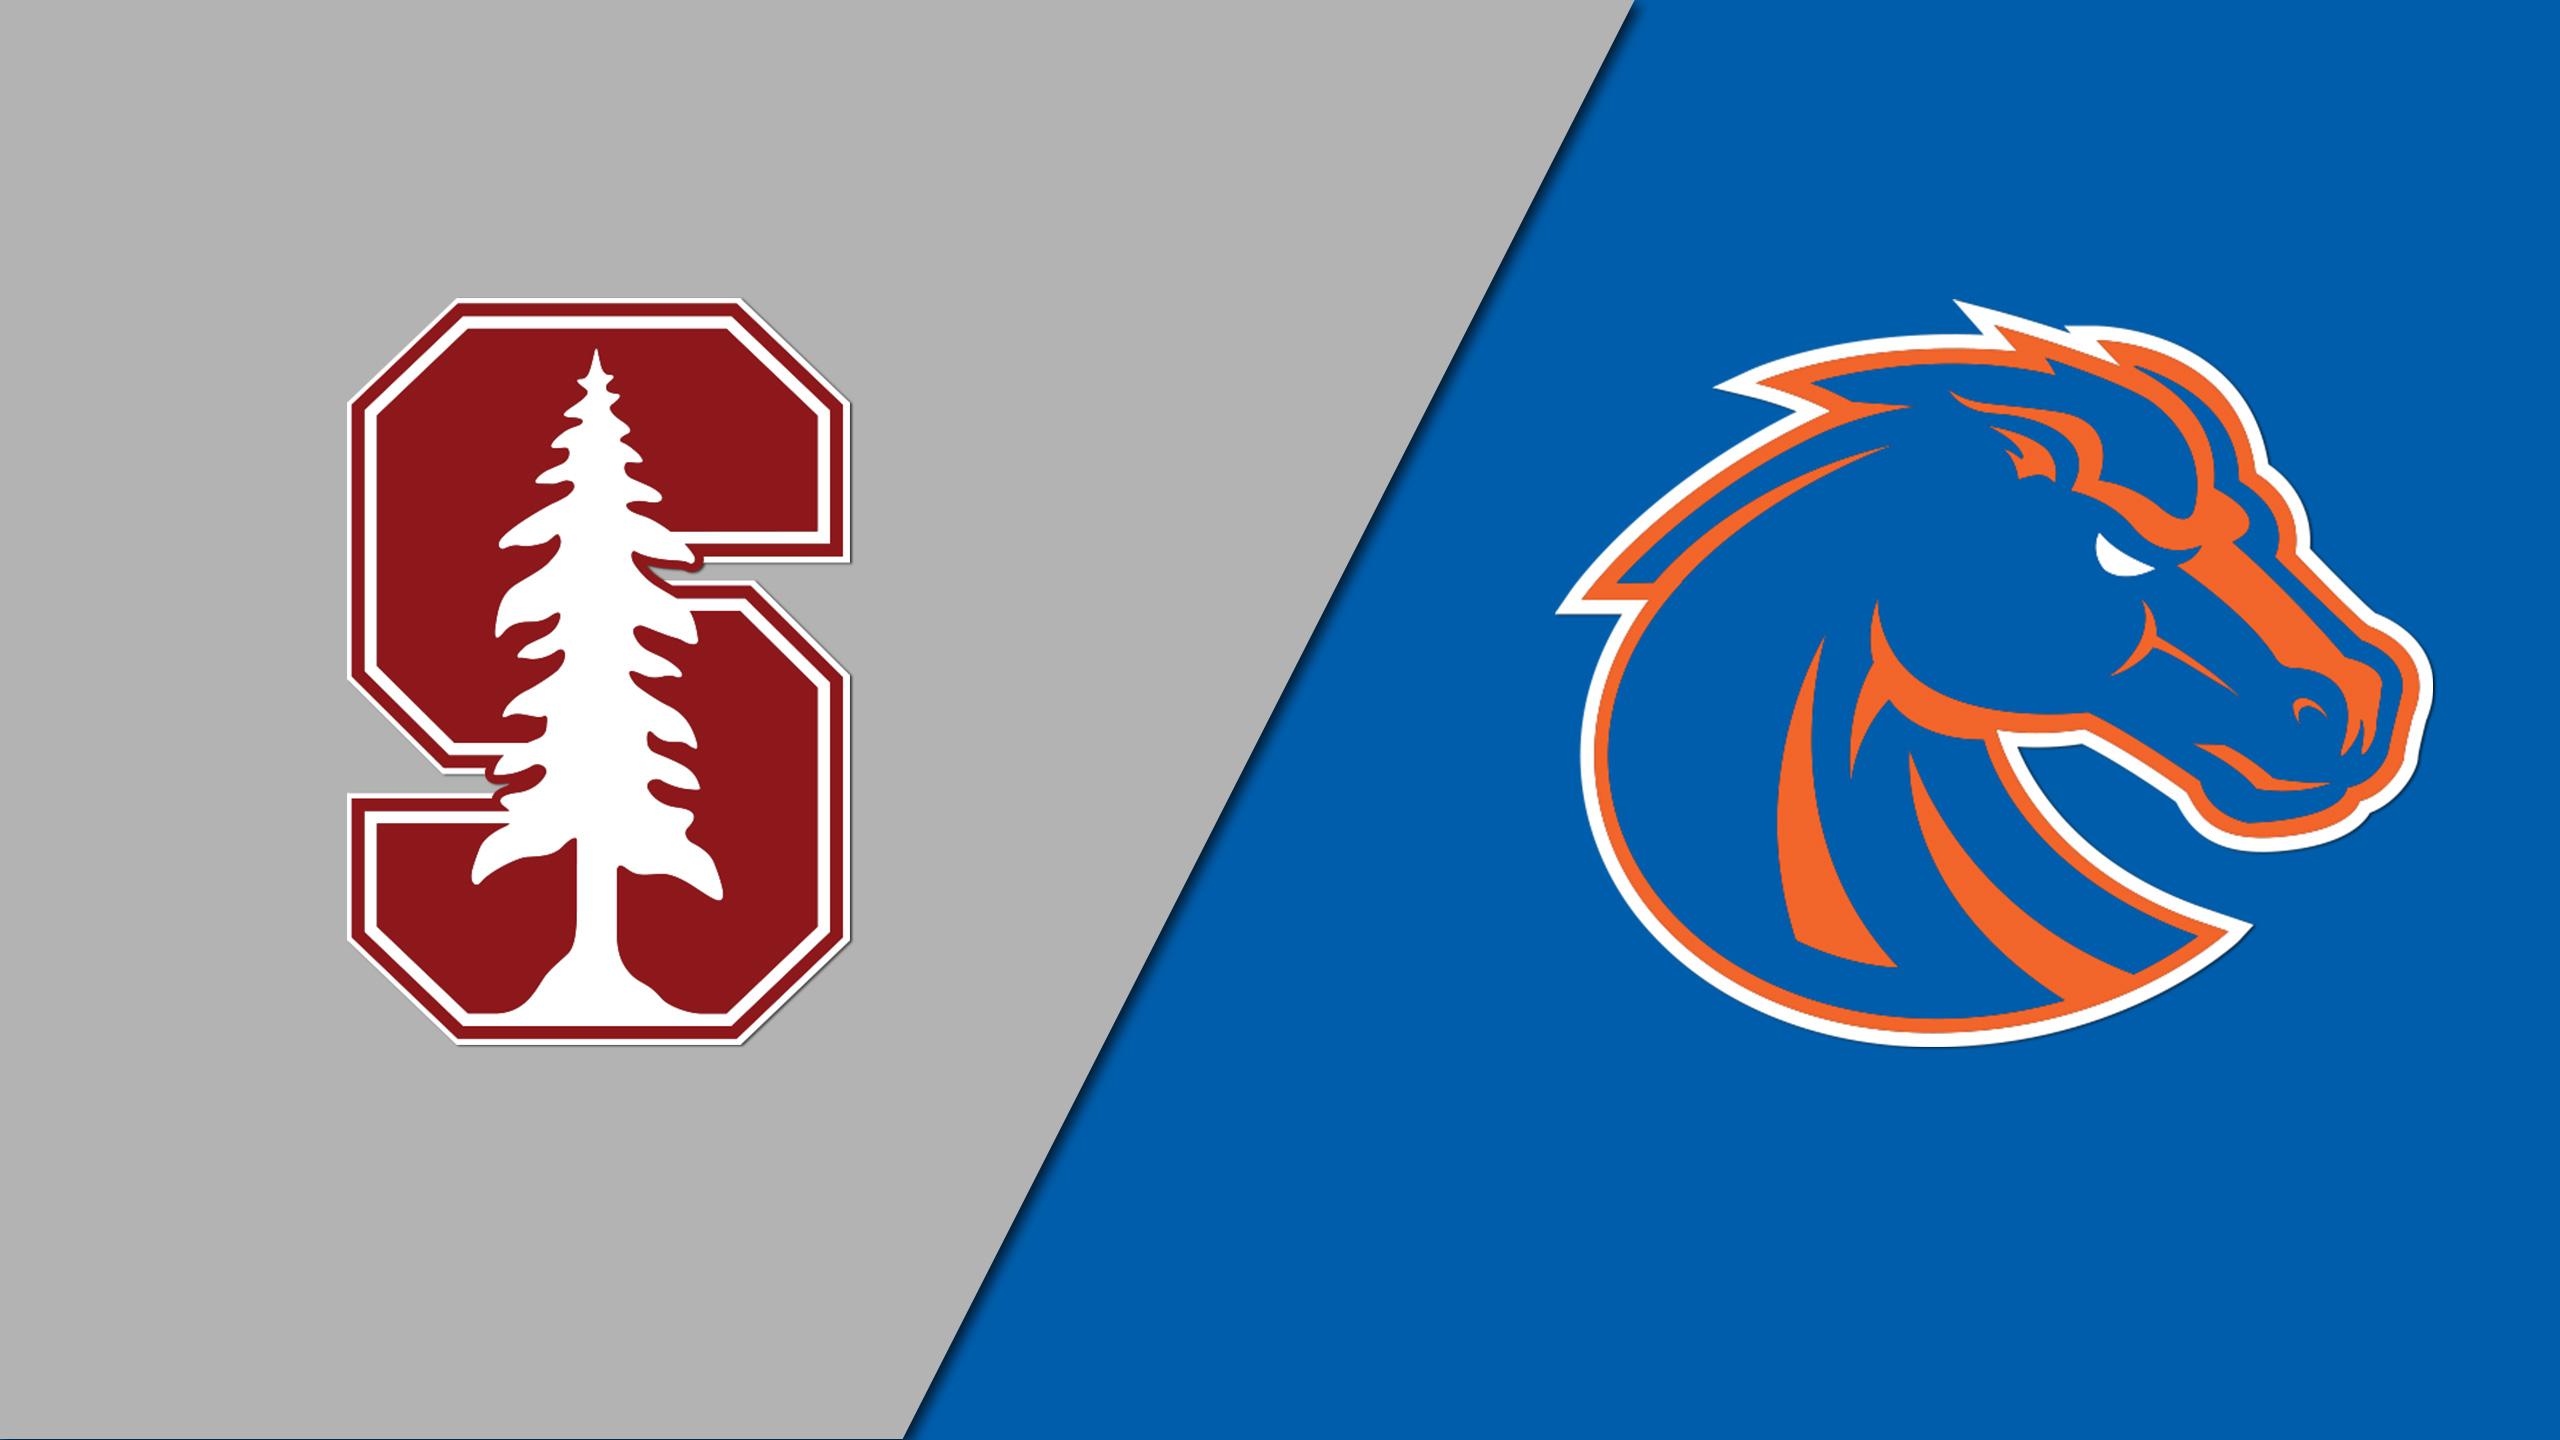 Stanford vs. Boise State (Site 3 / Game 5) (re-air)